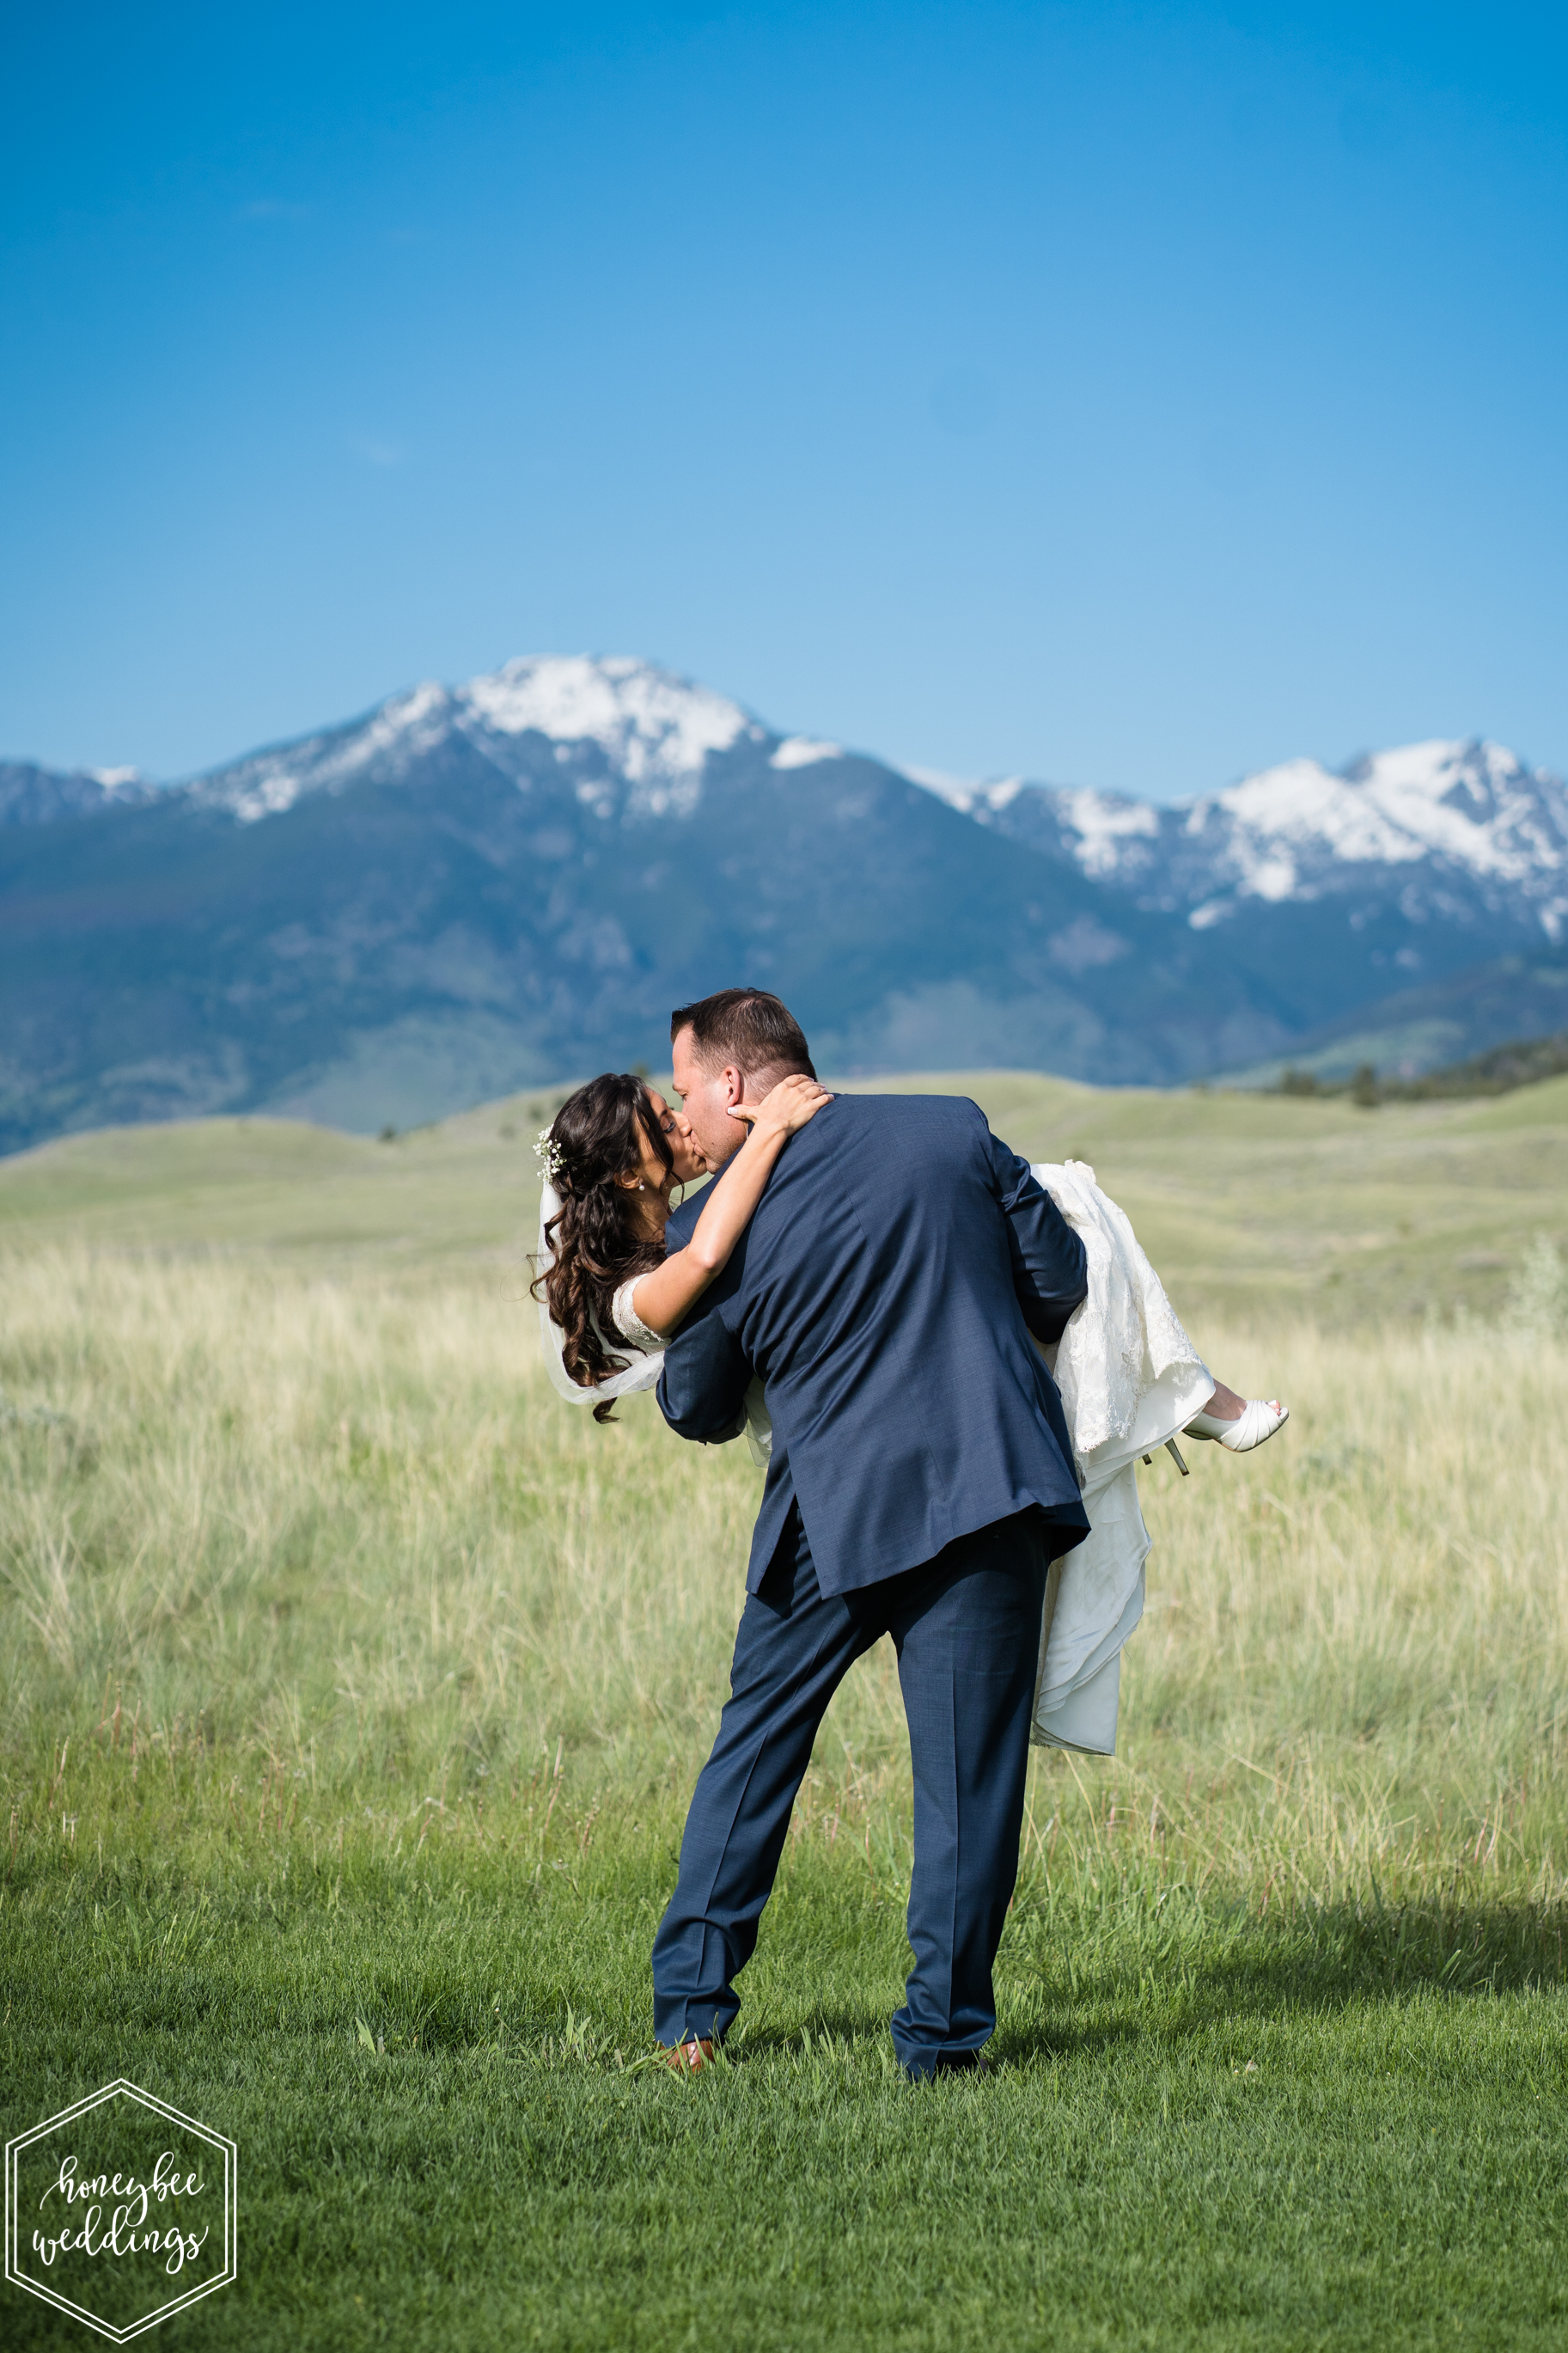 047Montana wedding photographer videographer_Chico hot springs wedding_Honeybee Weddings_Claudia & Bill_June 03, 2019-123.jpg